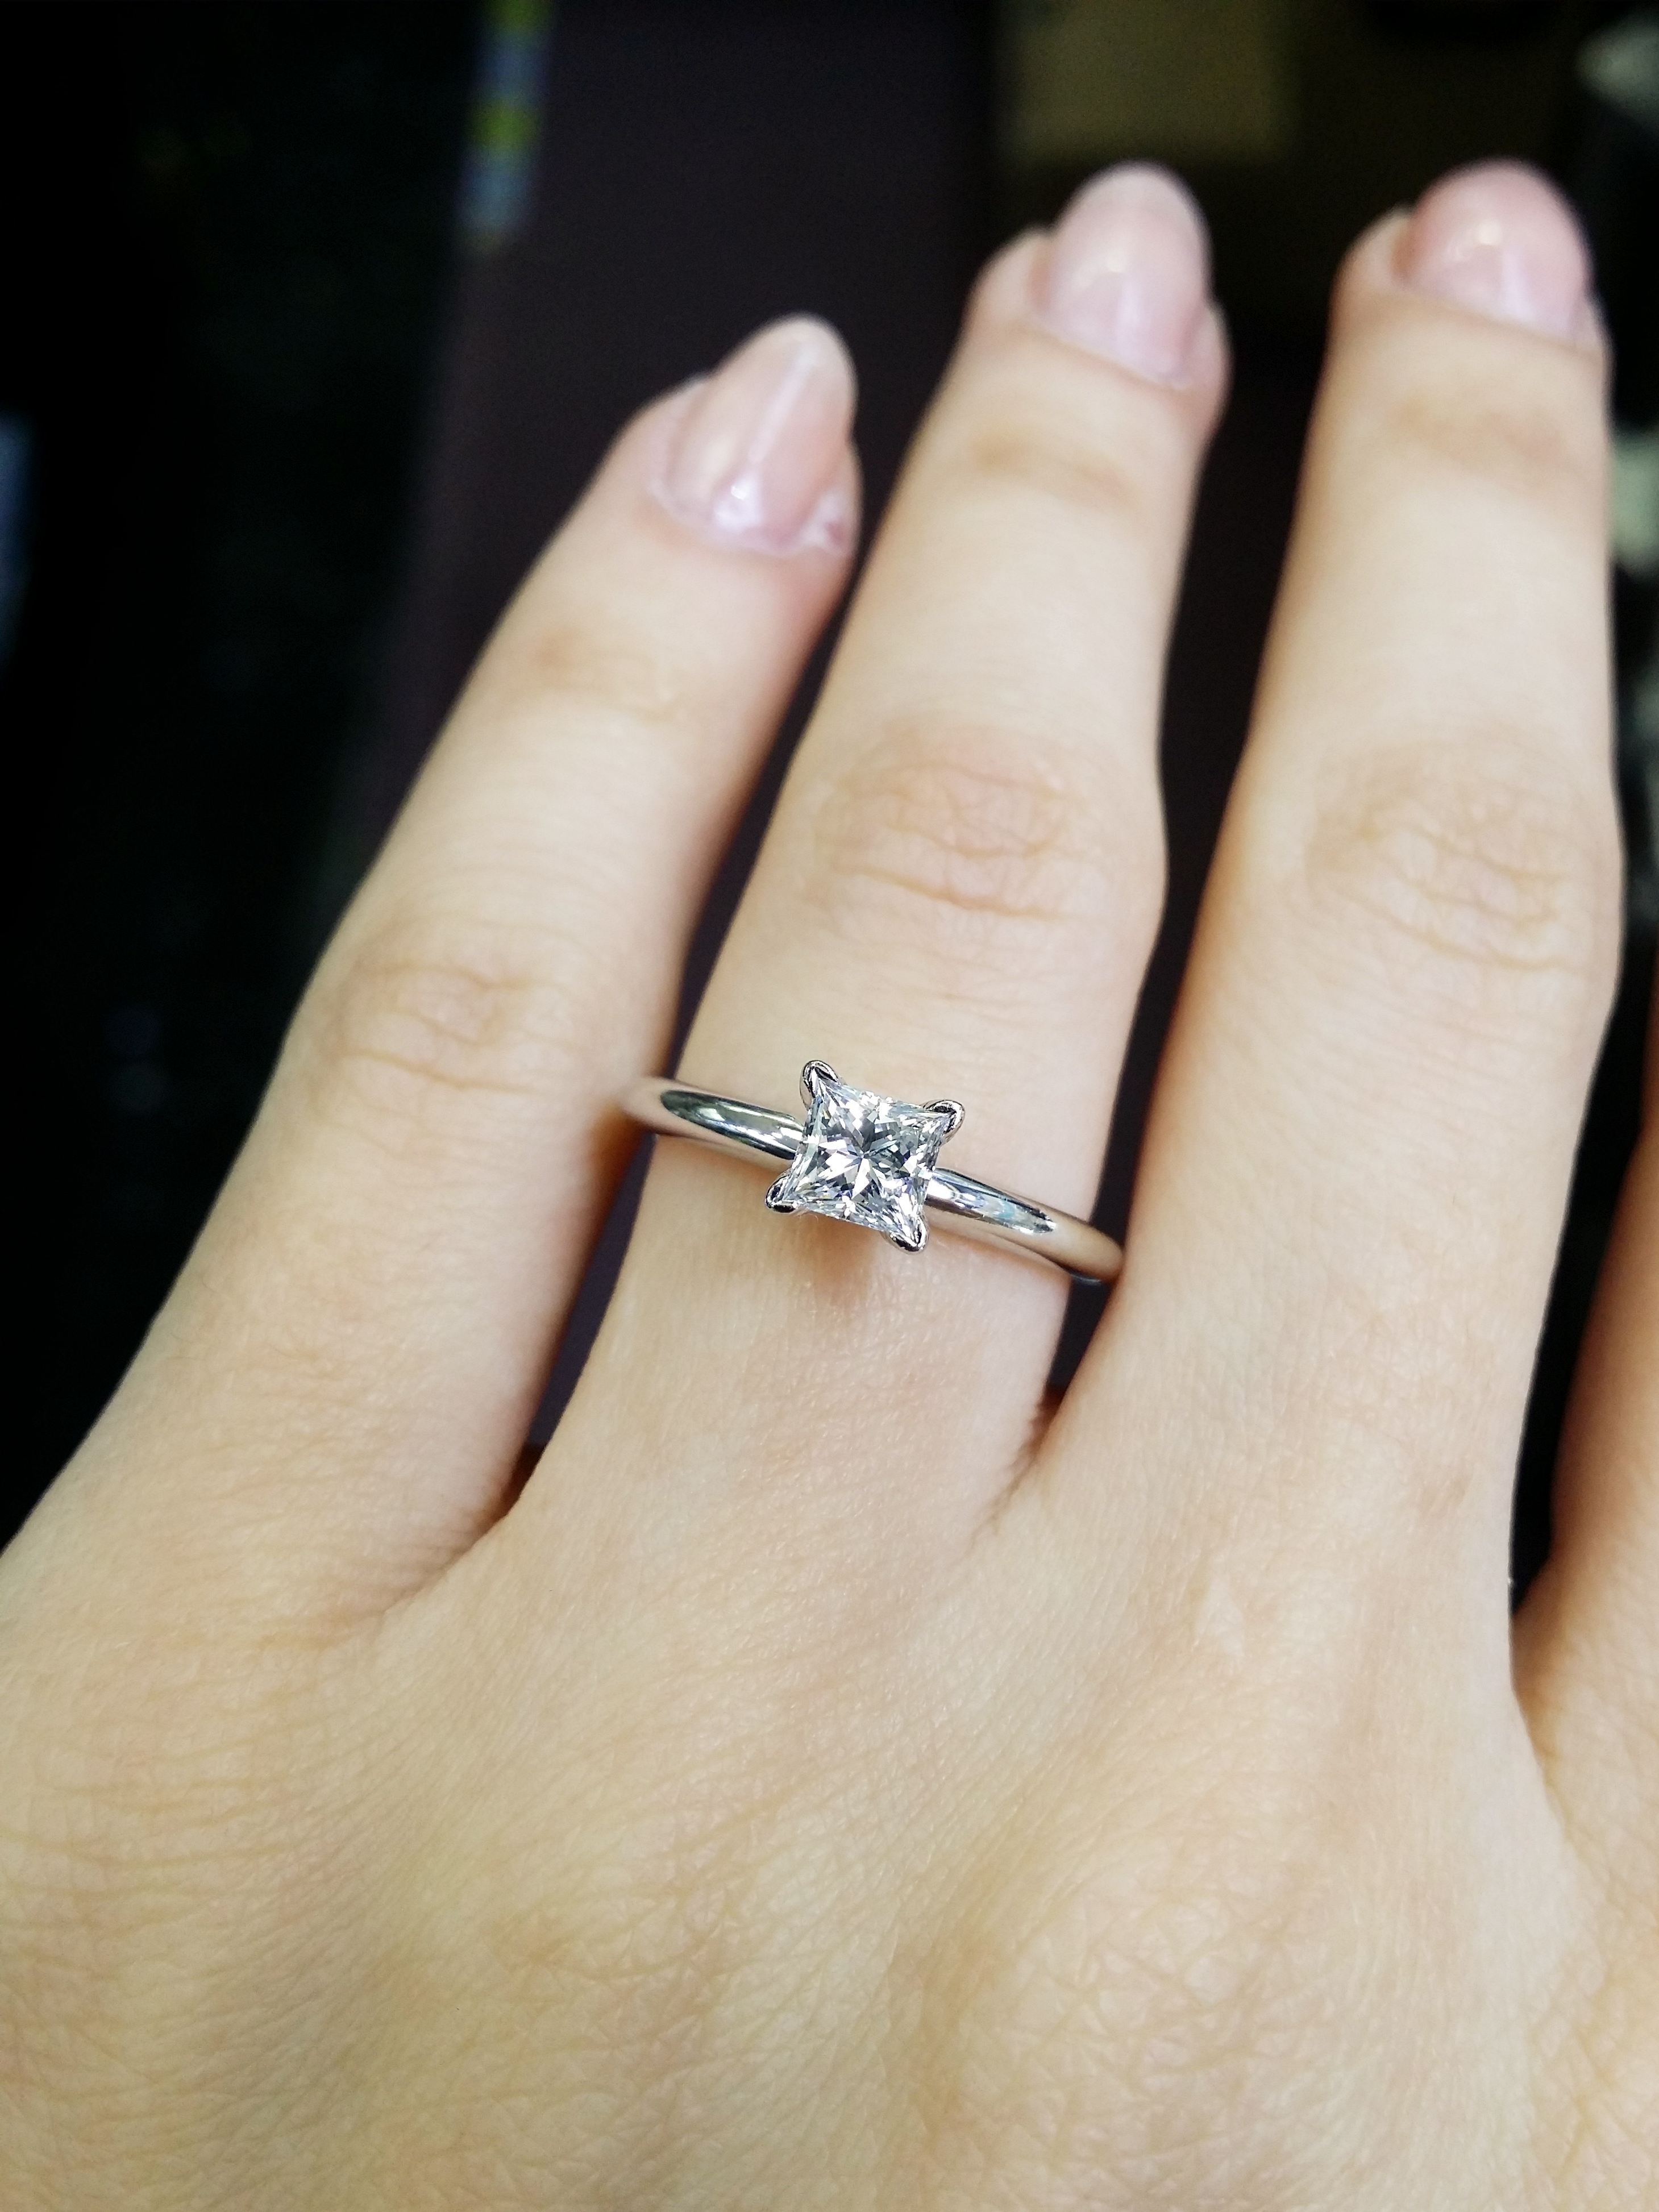 Delicate solitaire princess cut